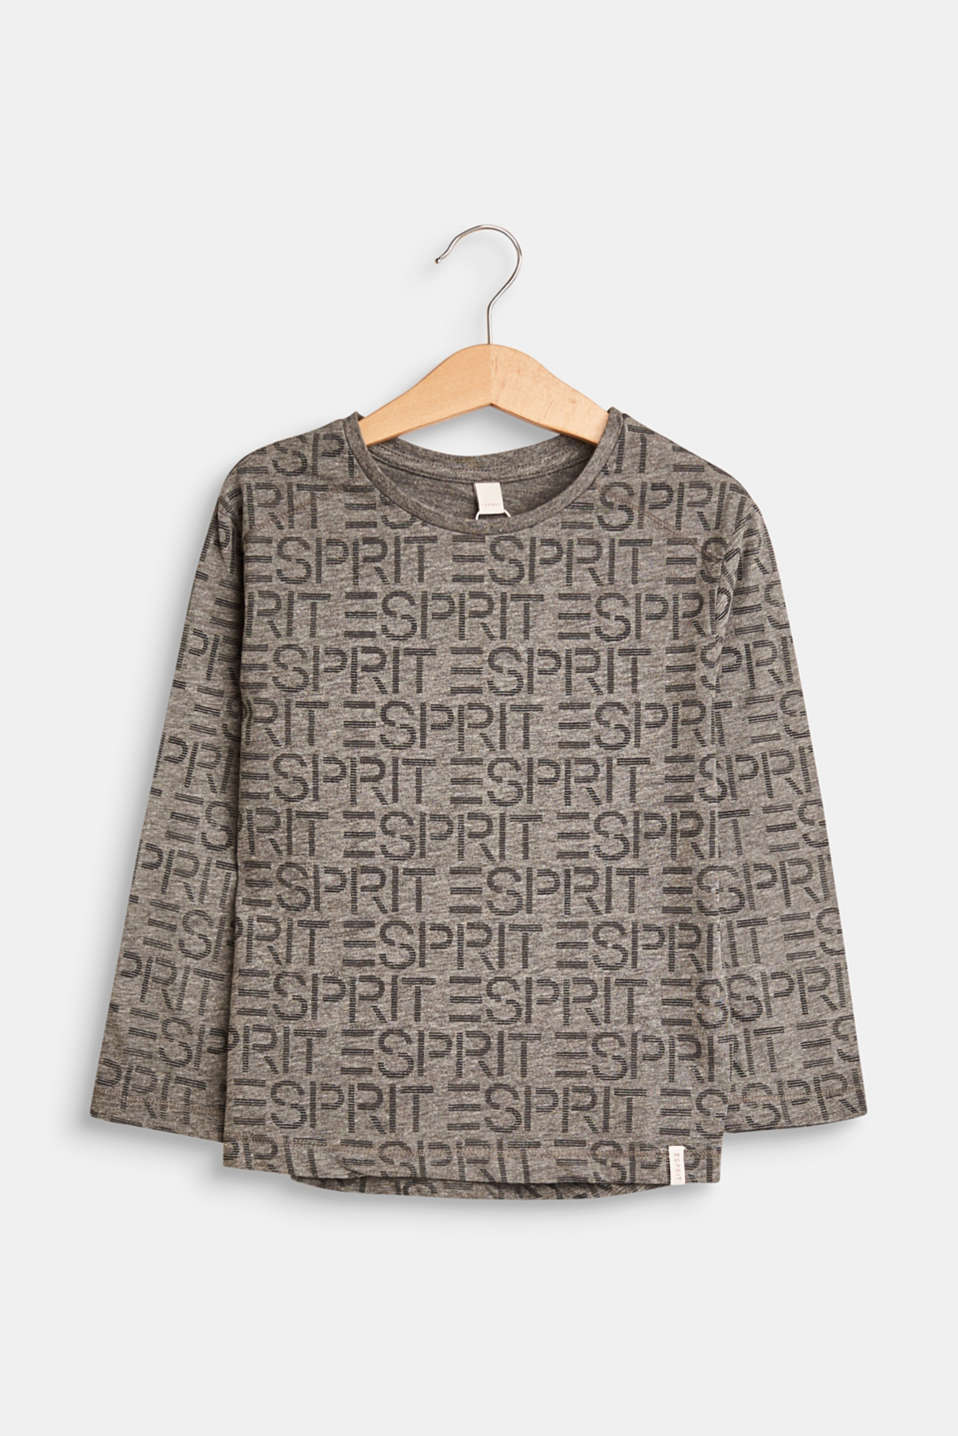 Esprit - Long sleeve top with a logo print